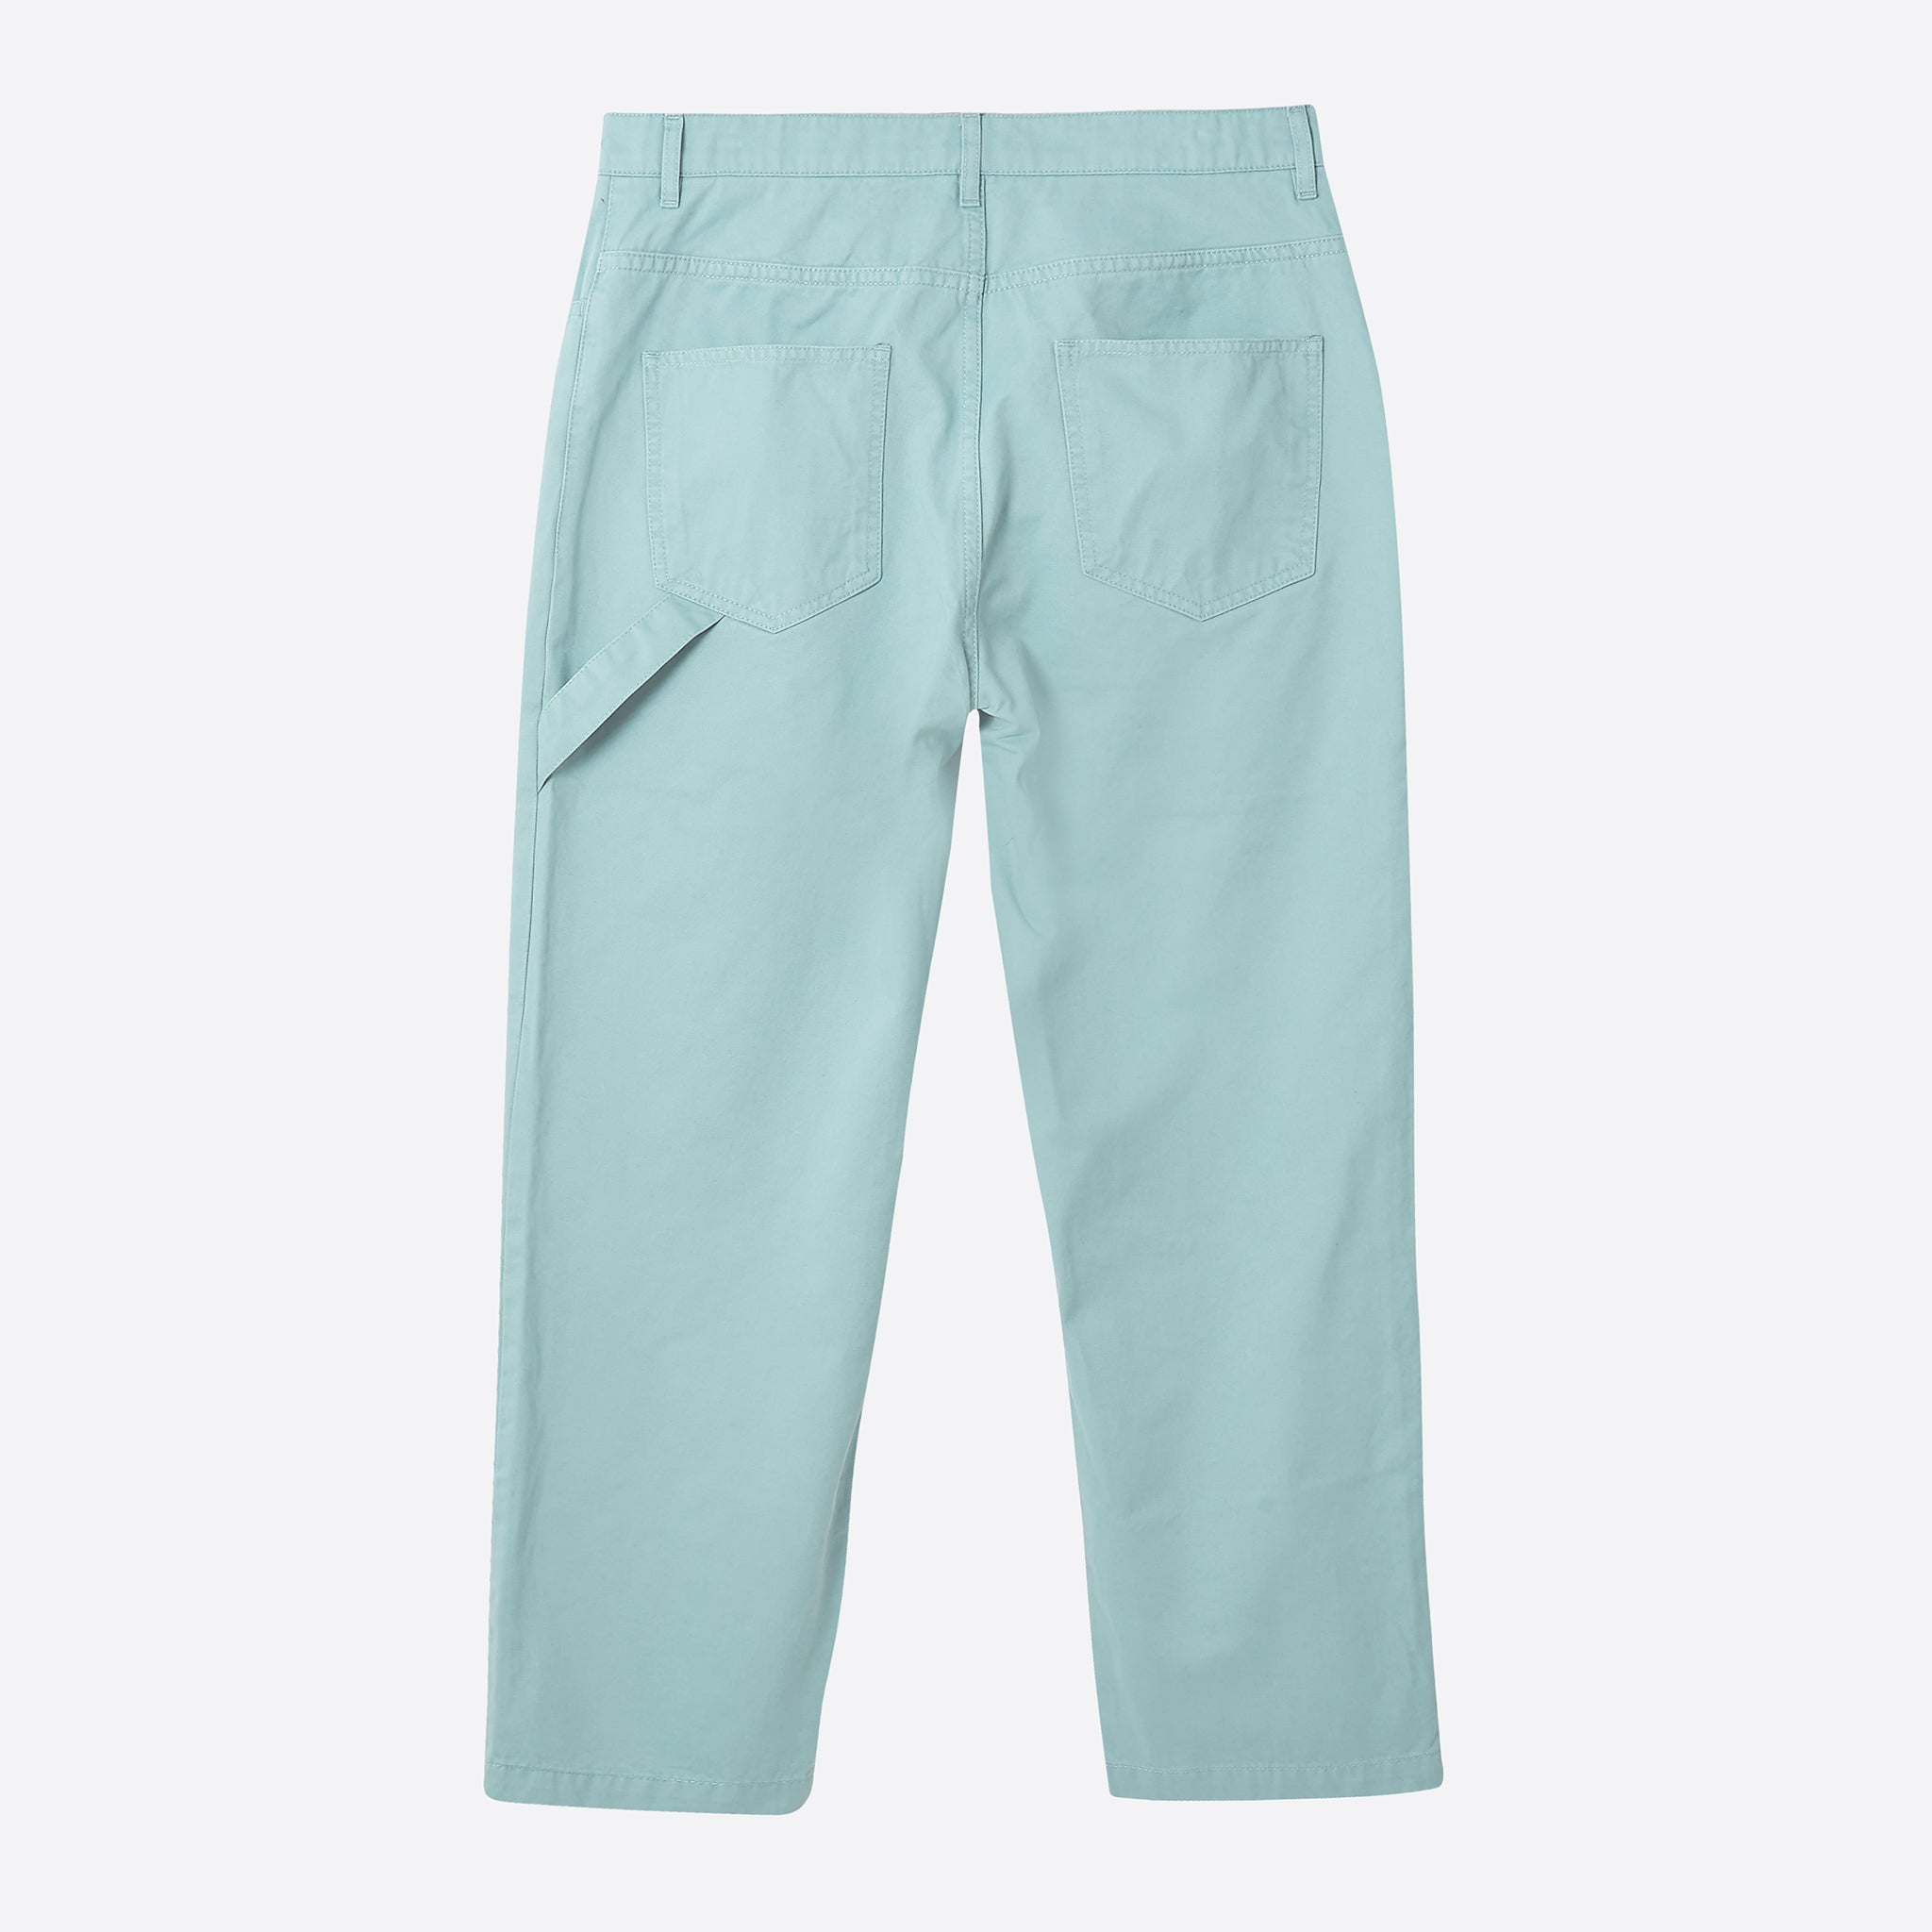 Wood Wood Benedict Trousers in Dusty Blue — Our Daily Edit 62450829c983